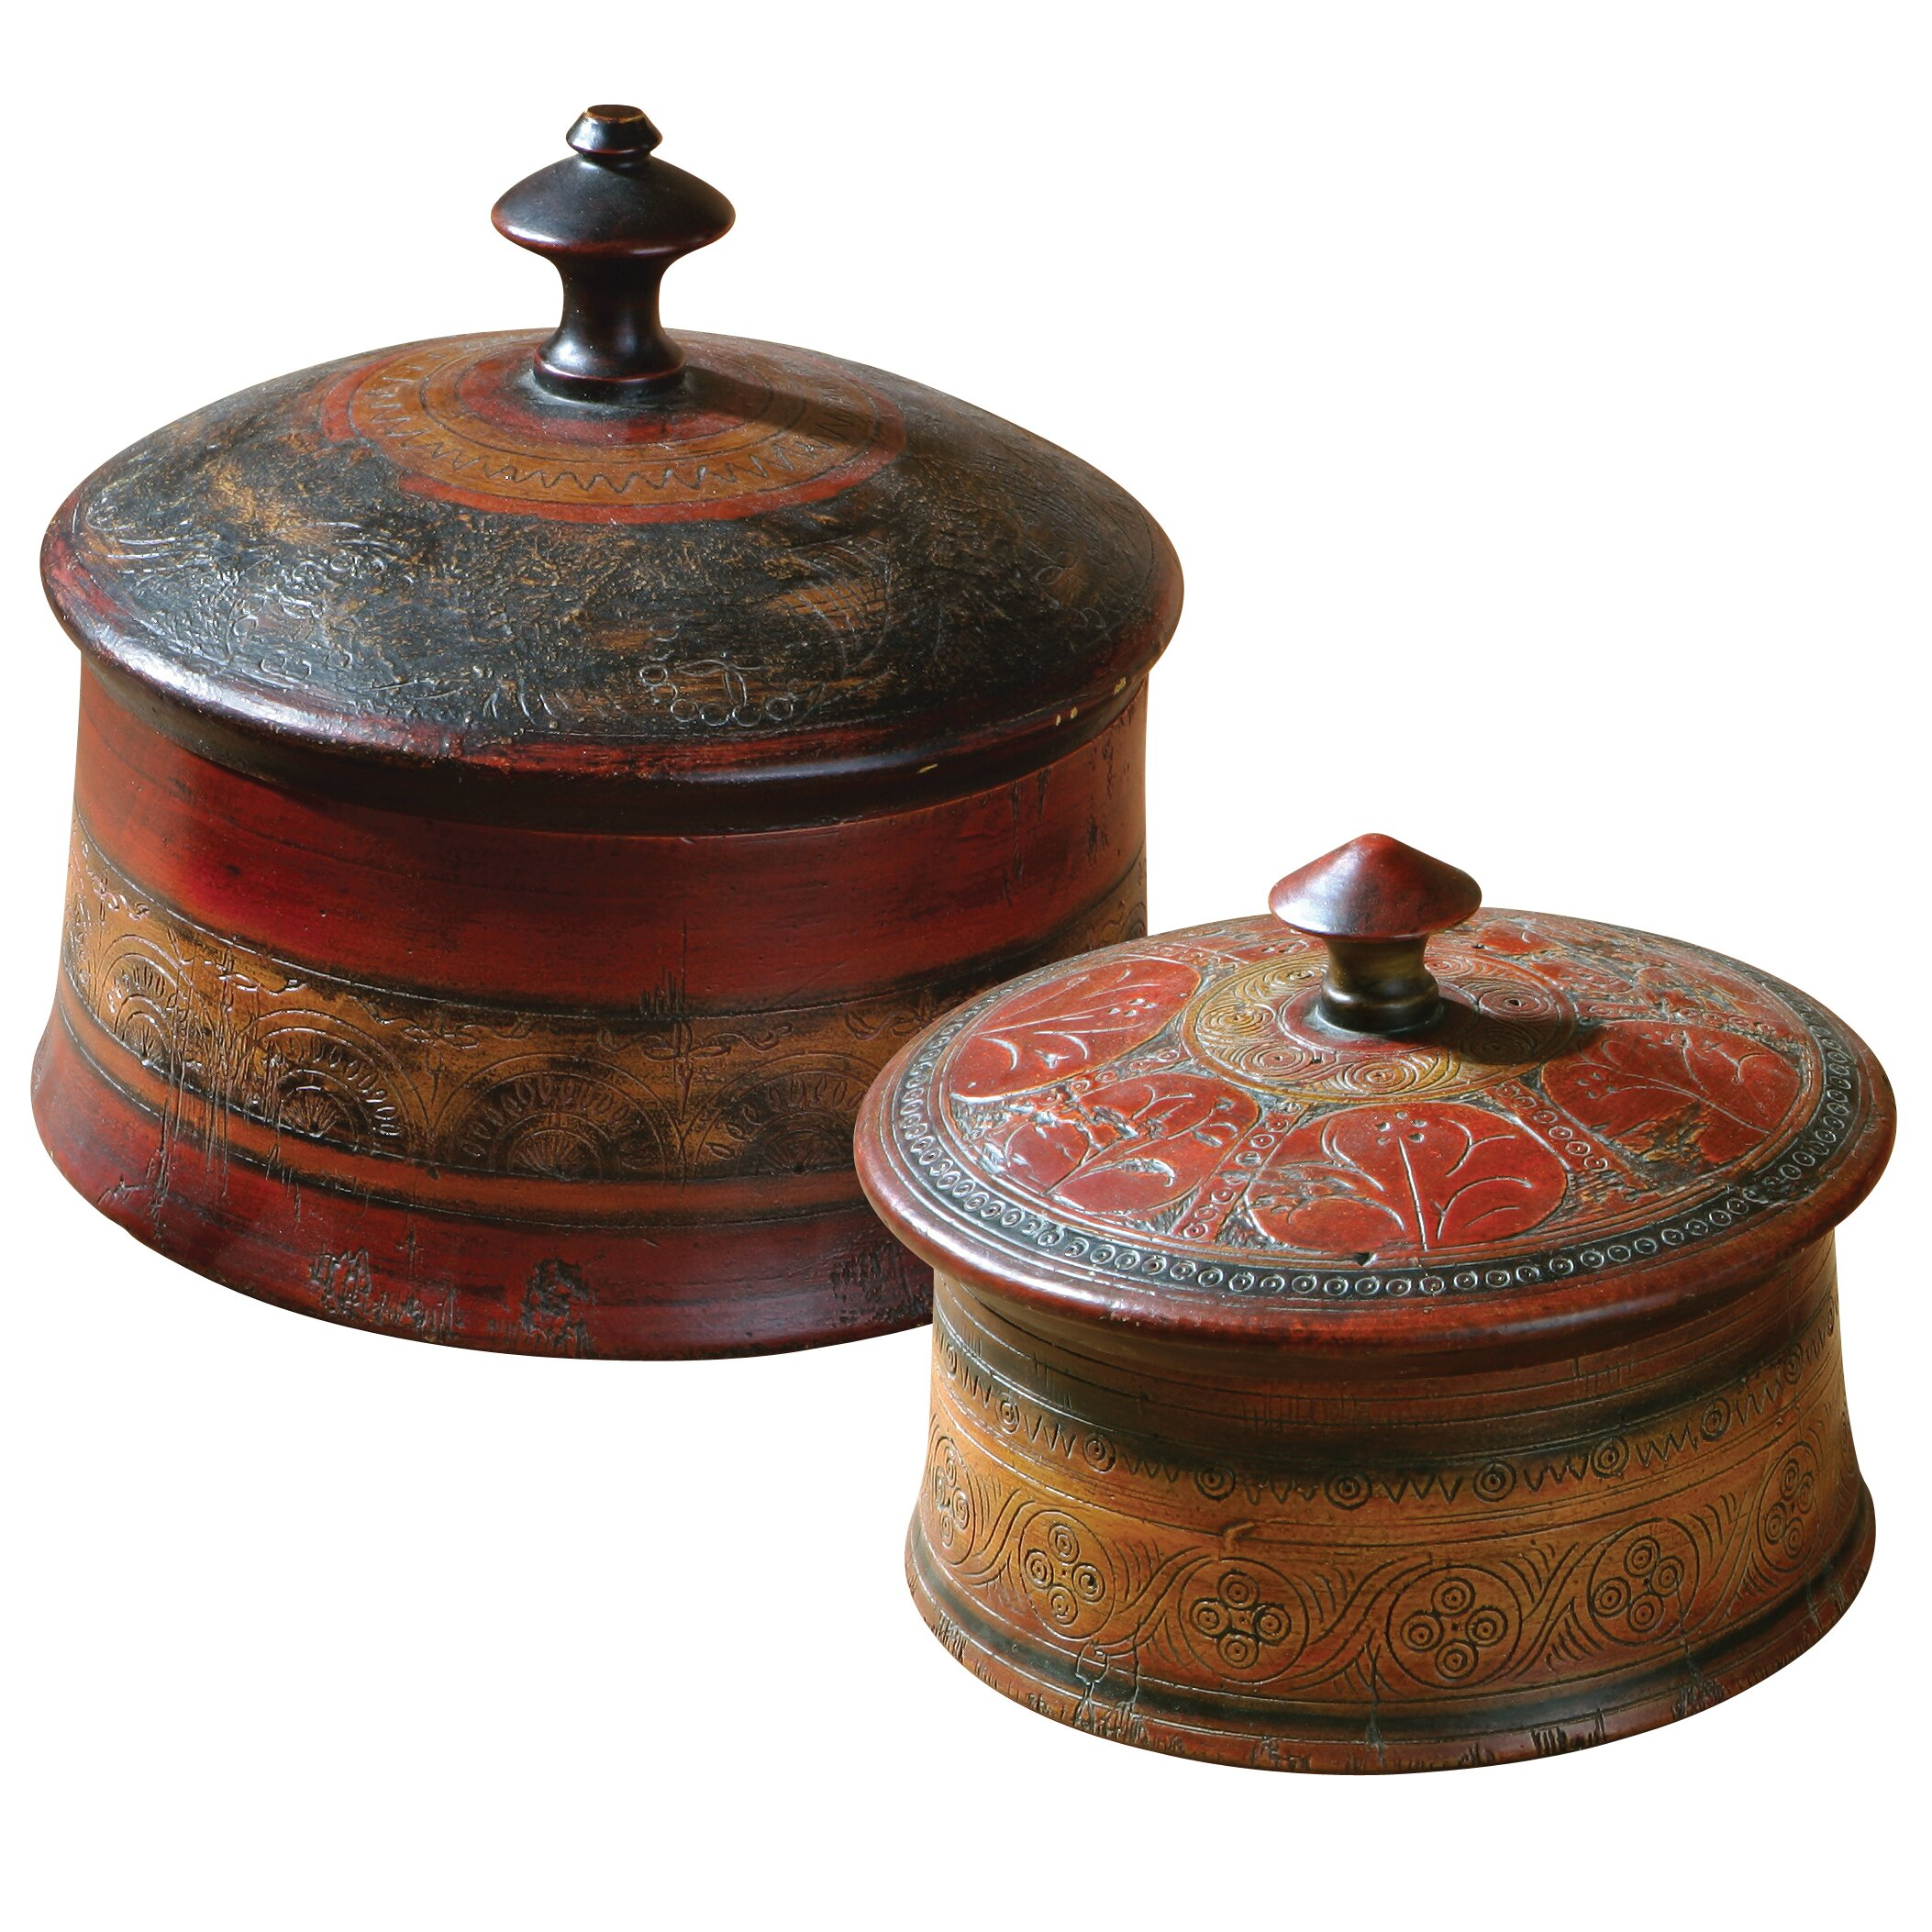 Uttermost Sherpa Round Decorative Boxes & Reviews